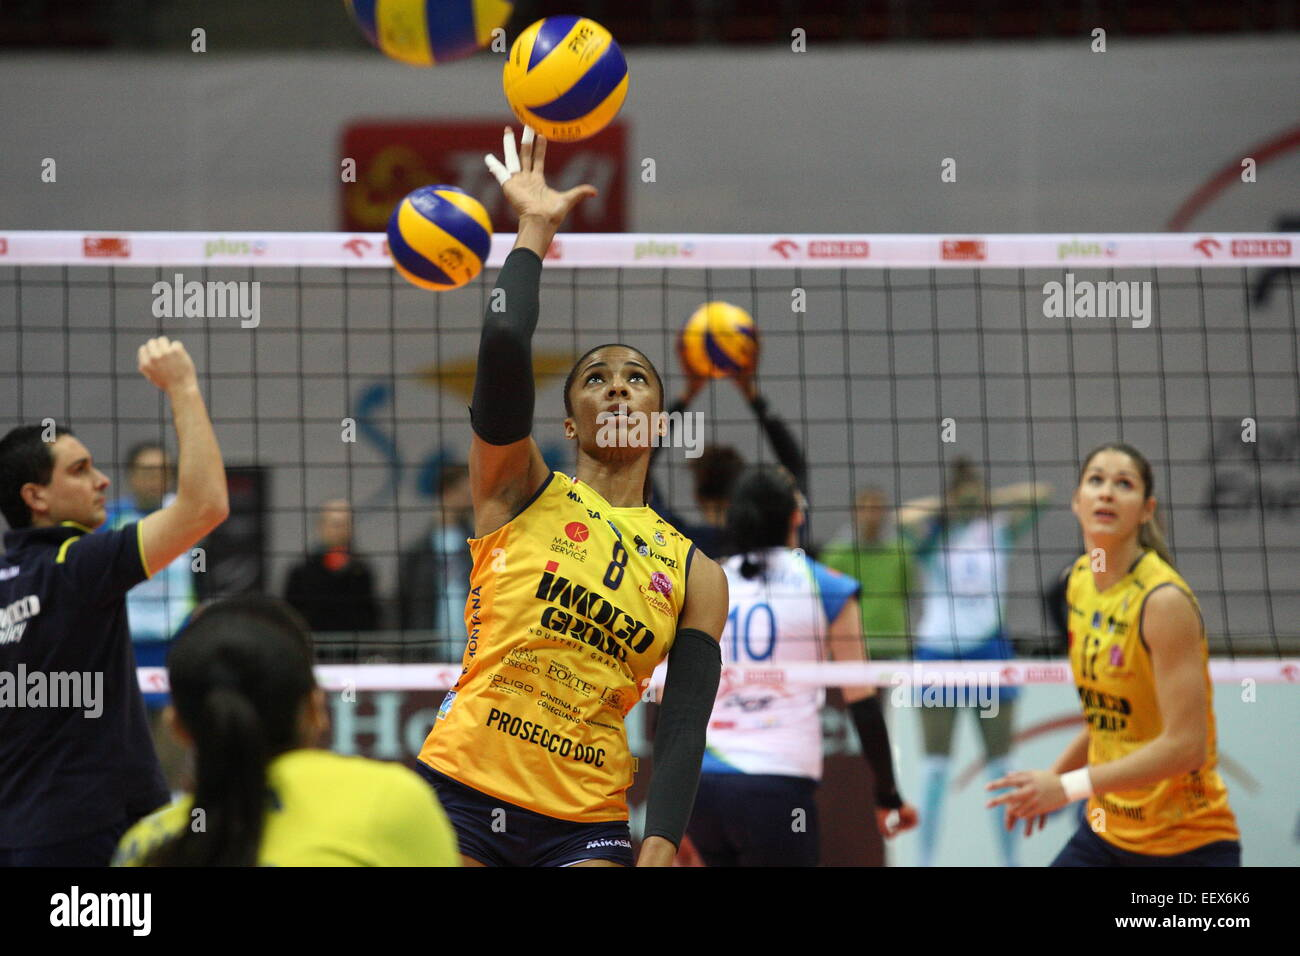 Sopot, Pologne, le 22 avril 2015 Volley-ball CEV Cup 2015 . Atome Trefl Sopot PGE Prosecco Conegliano dans Doc-Imoco Photo Stock